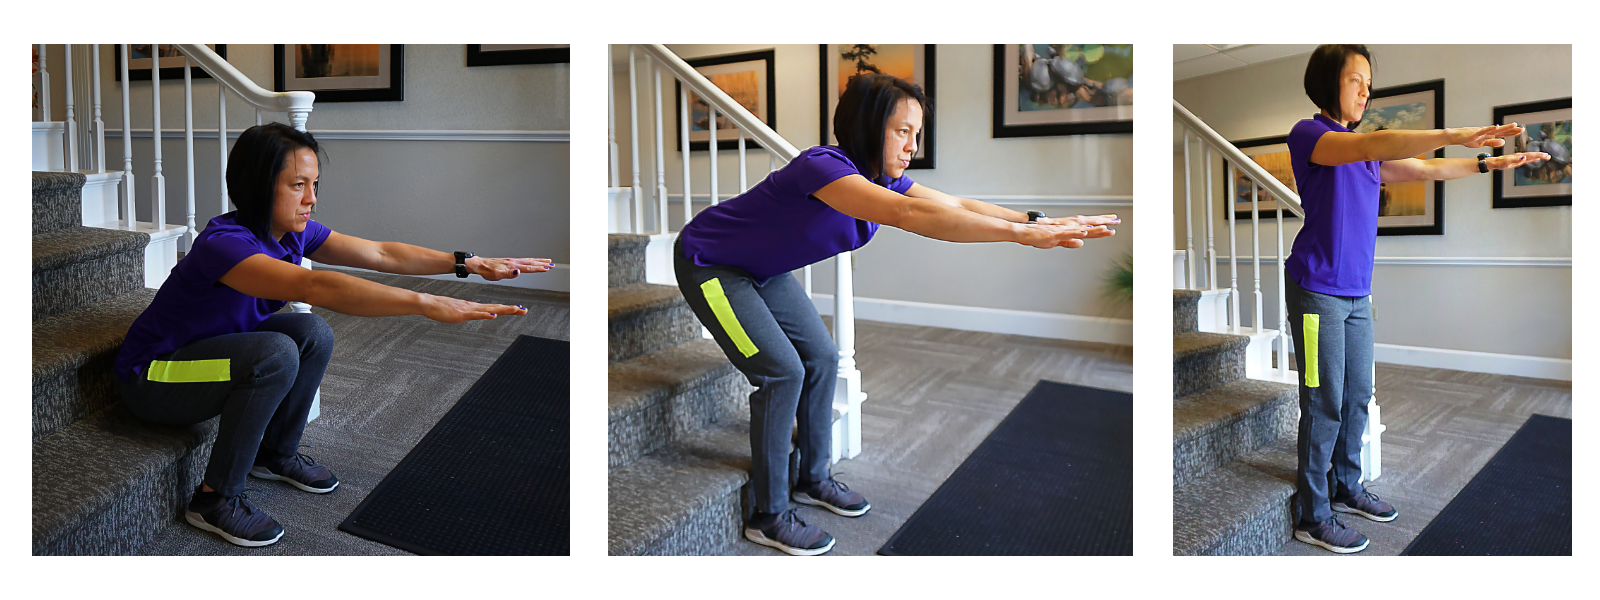 squatting to standing exercise